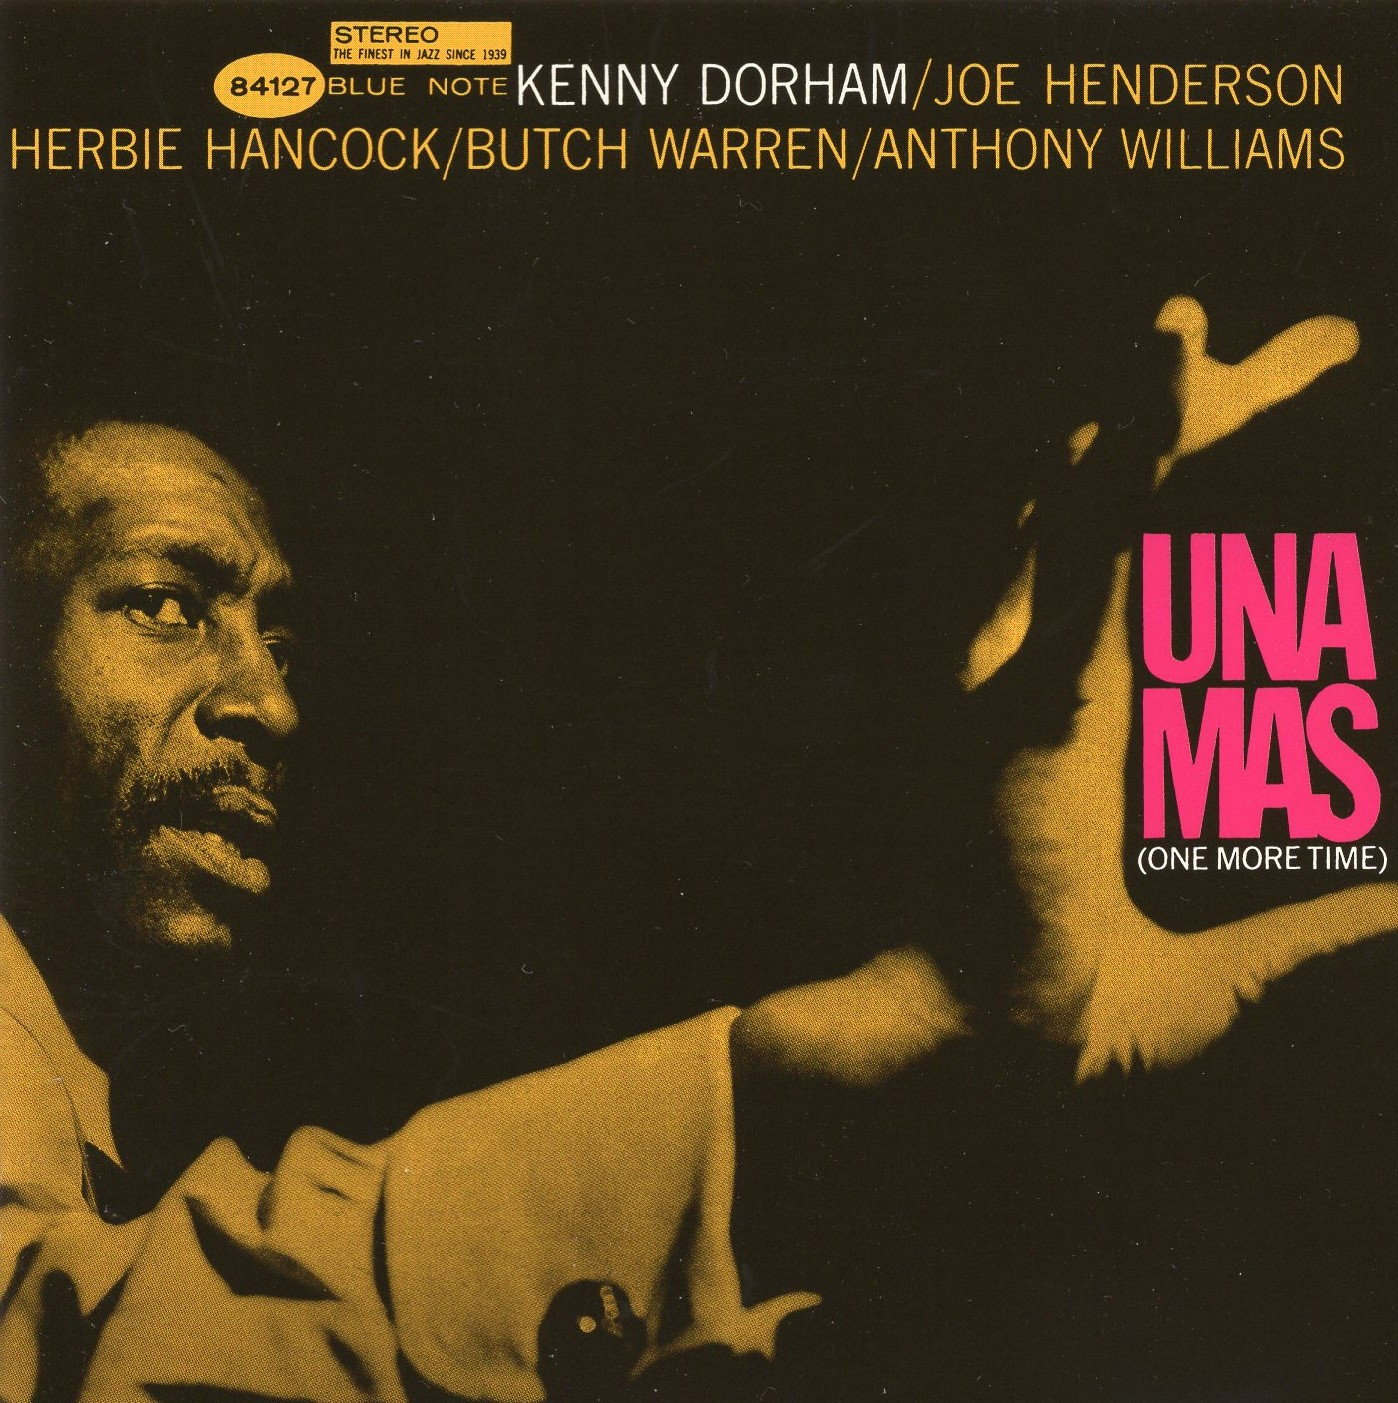 """Una Mas"" Anthony Williams, Butch Warren, Herbie Hancock, Joe Henderson, Kenny Dorham"